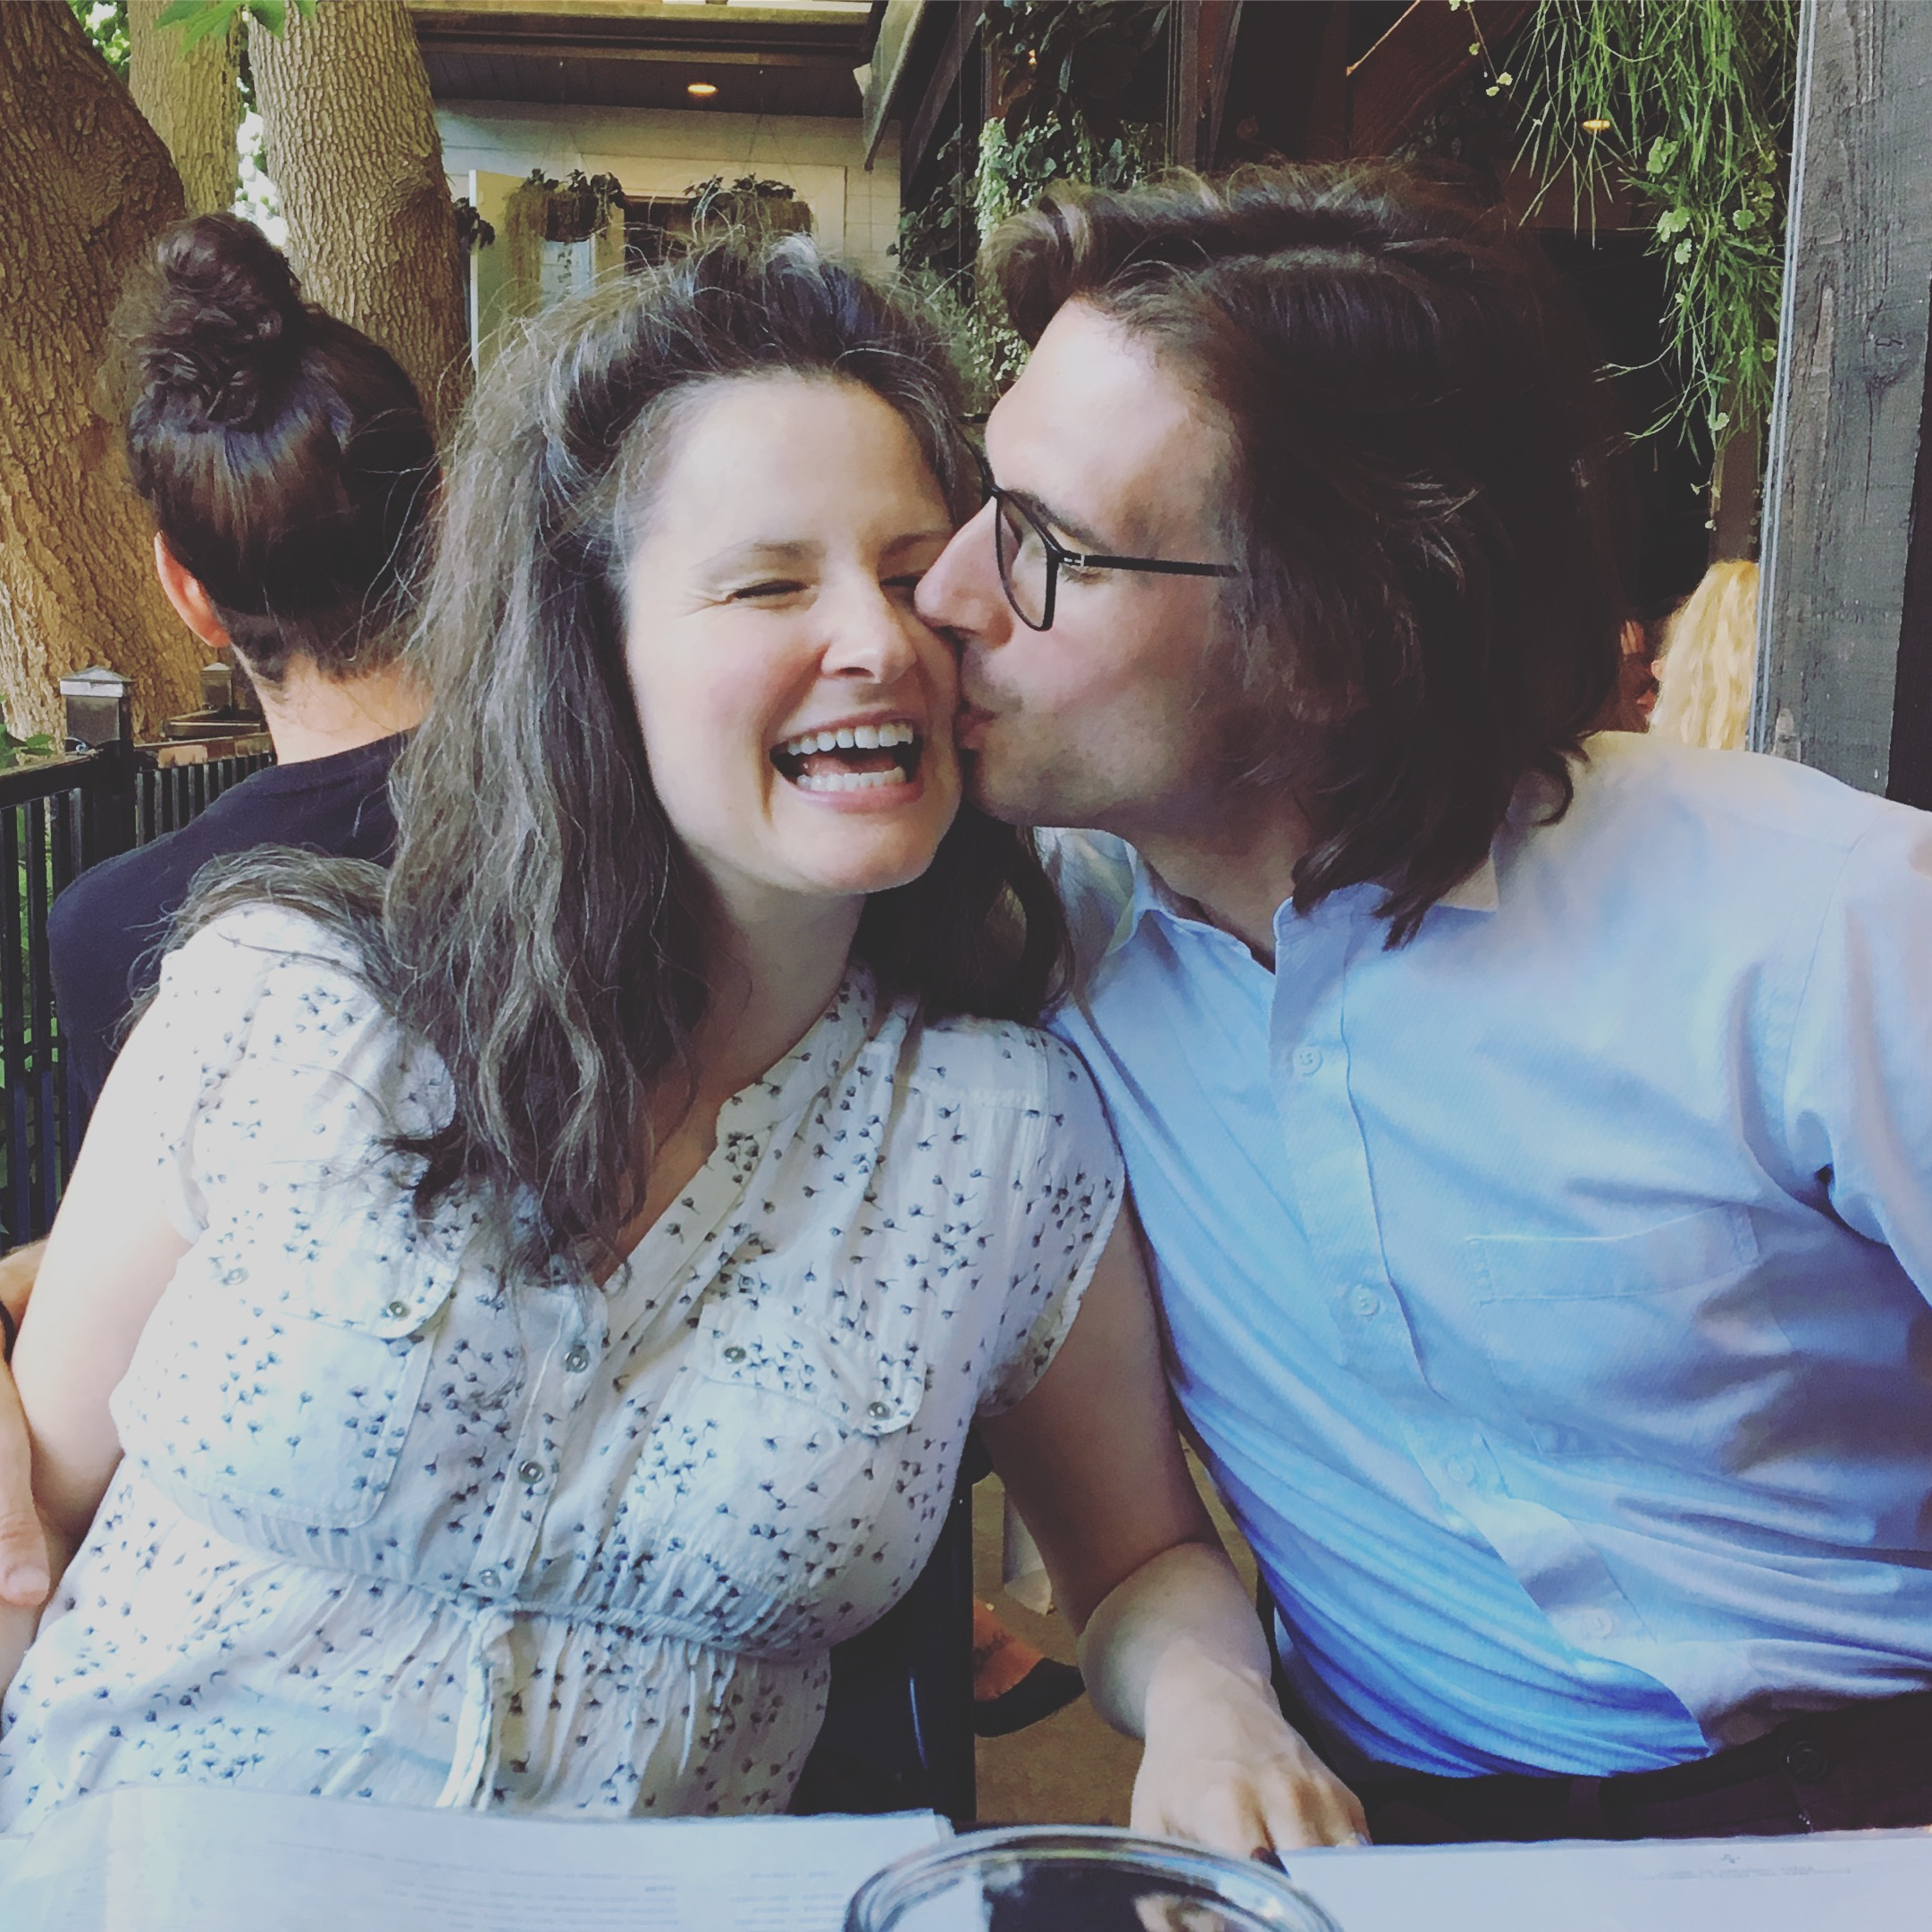 Mat and I celebrated our 4th wedding anniversary this summer! Mom took us out to dinner and let us sit on the same side of the table. :D